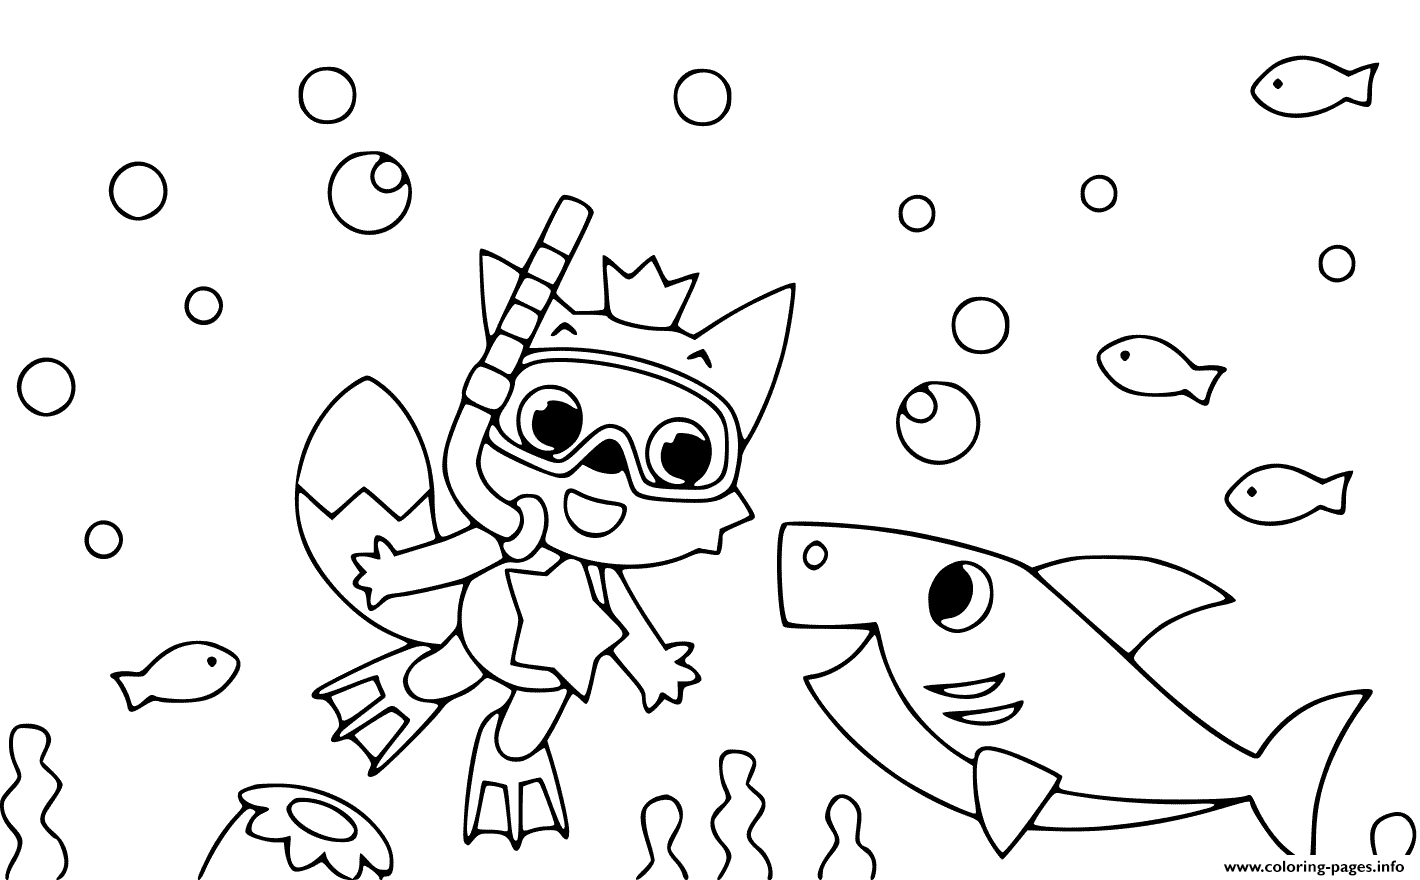 printable shark coloring pages sharks for kids sharks kids coloring pages shark coloring printable pages